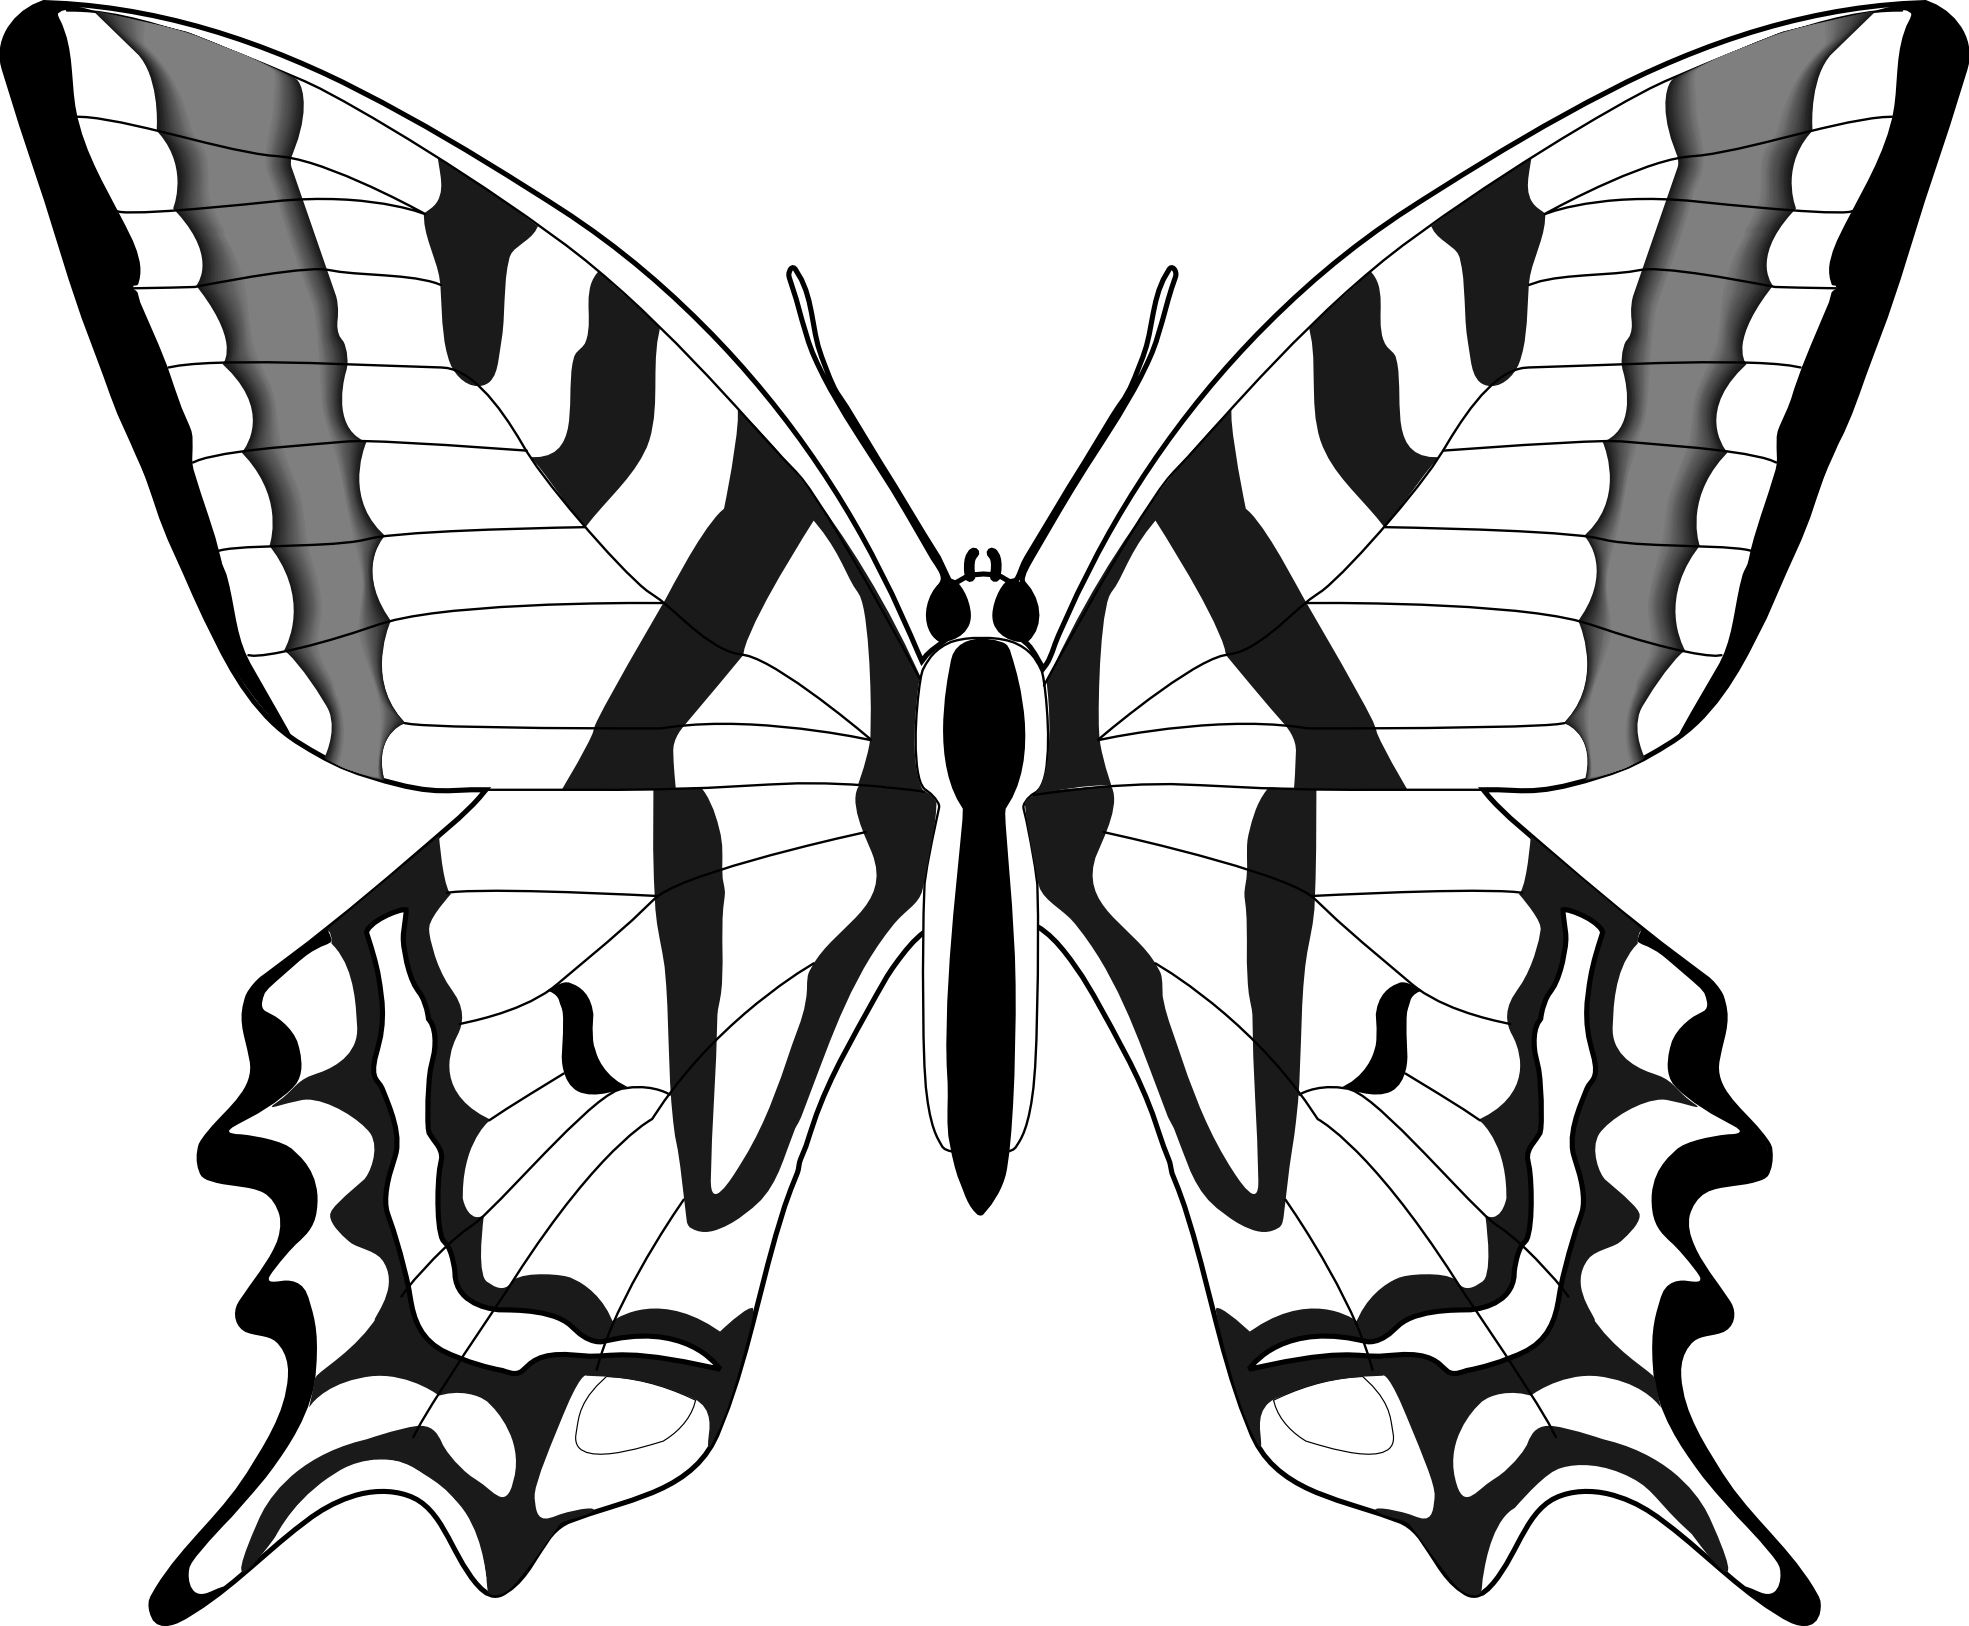 Butterfly Drawings In Black And White - ClipArt Best